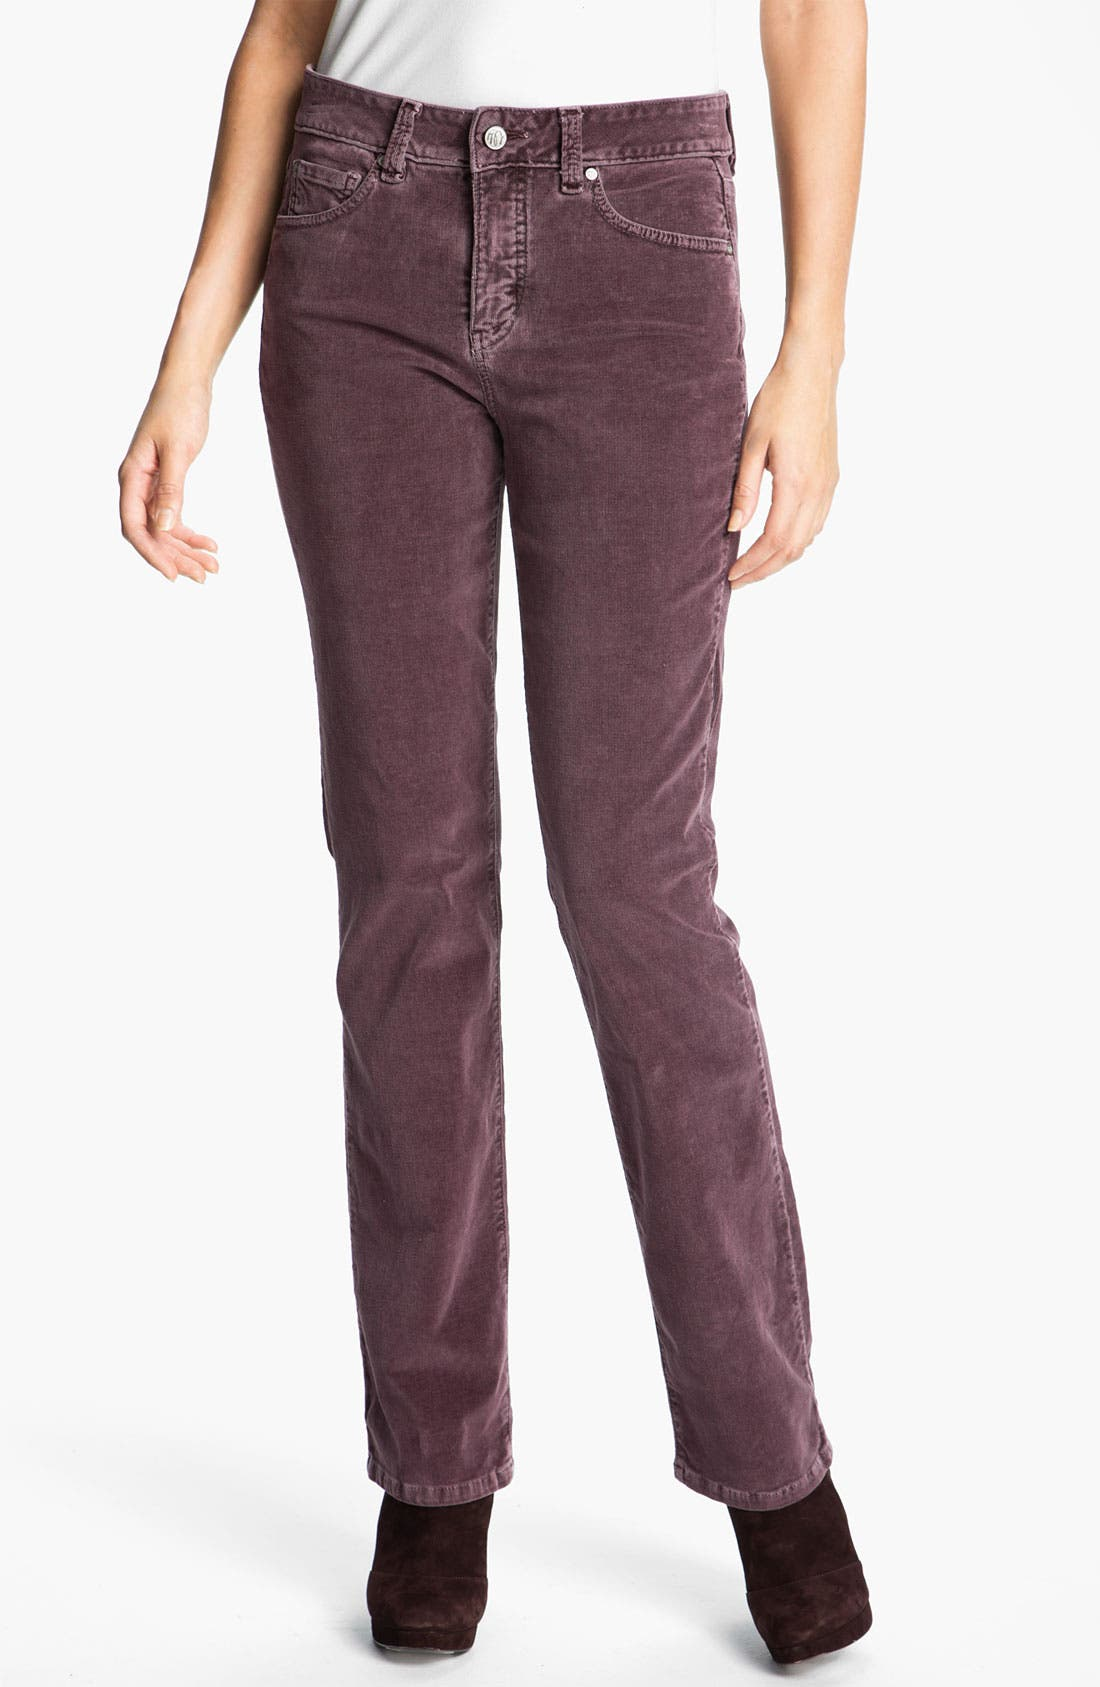 Main Image - Miraclebody 'Katie' Straight Leg Stretch Corduroy Jeans